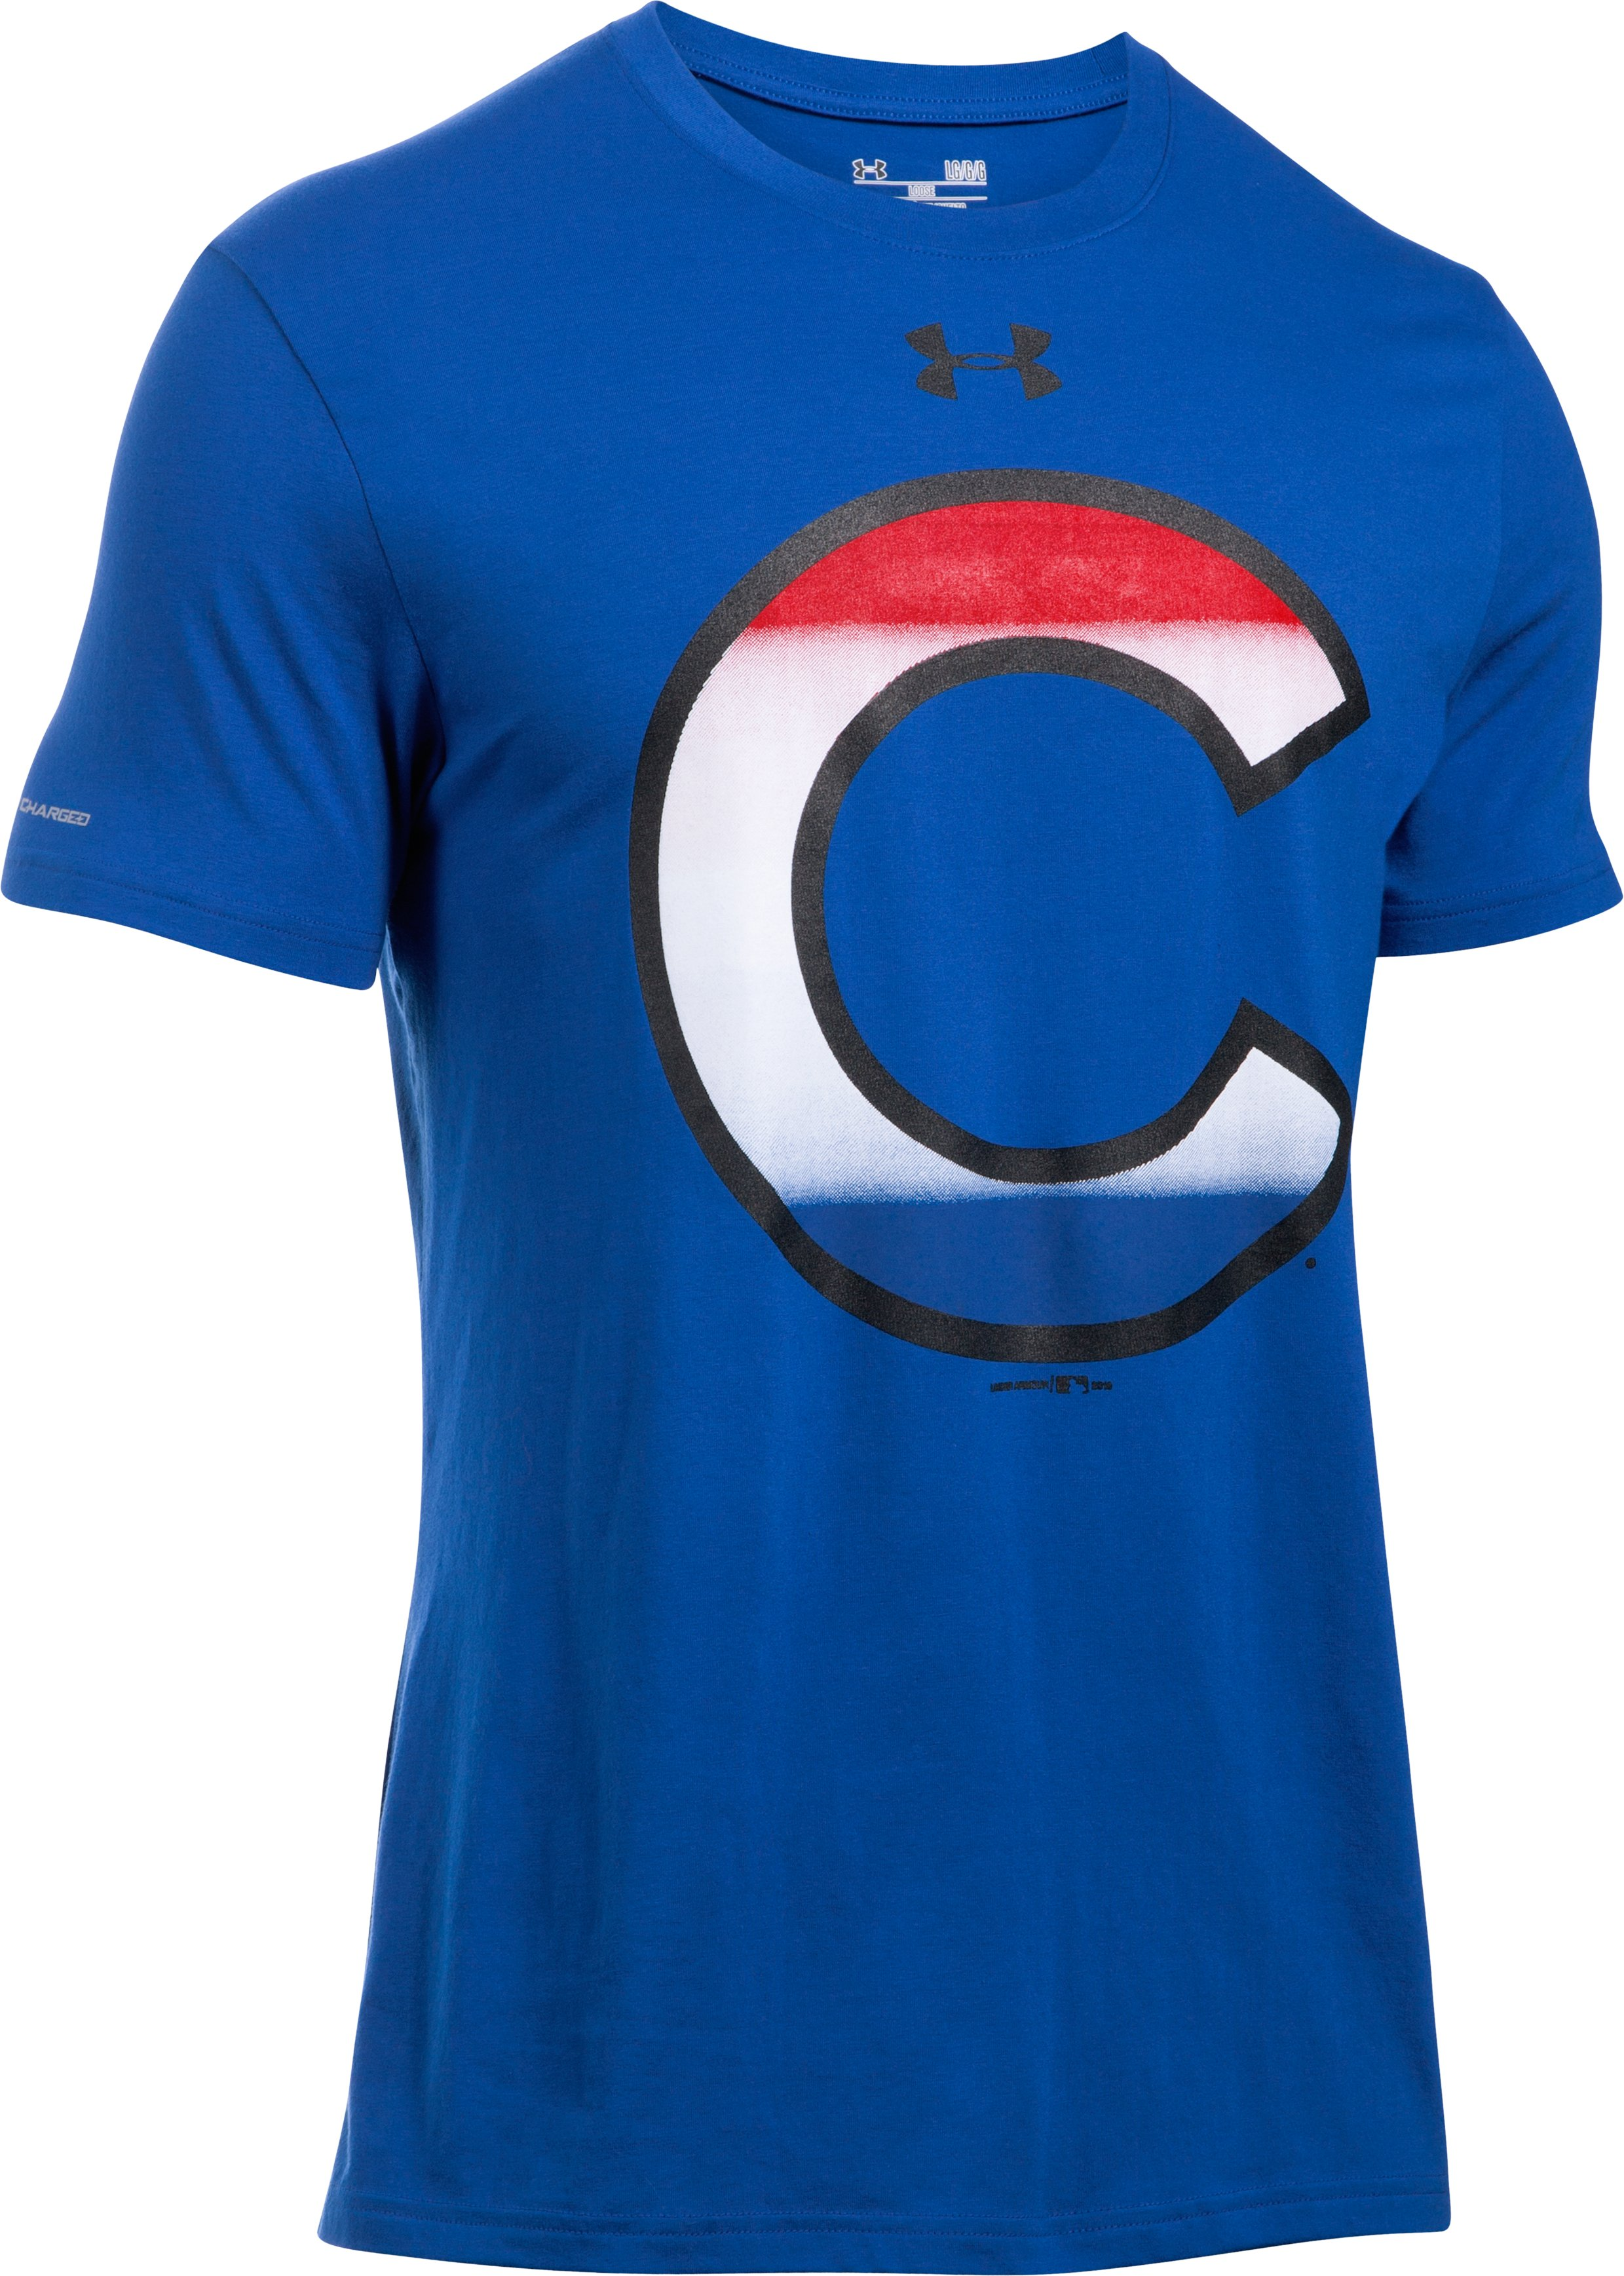 Men's Chicago Cubs T-Shirt, Royal, undefined